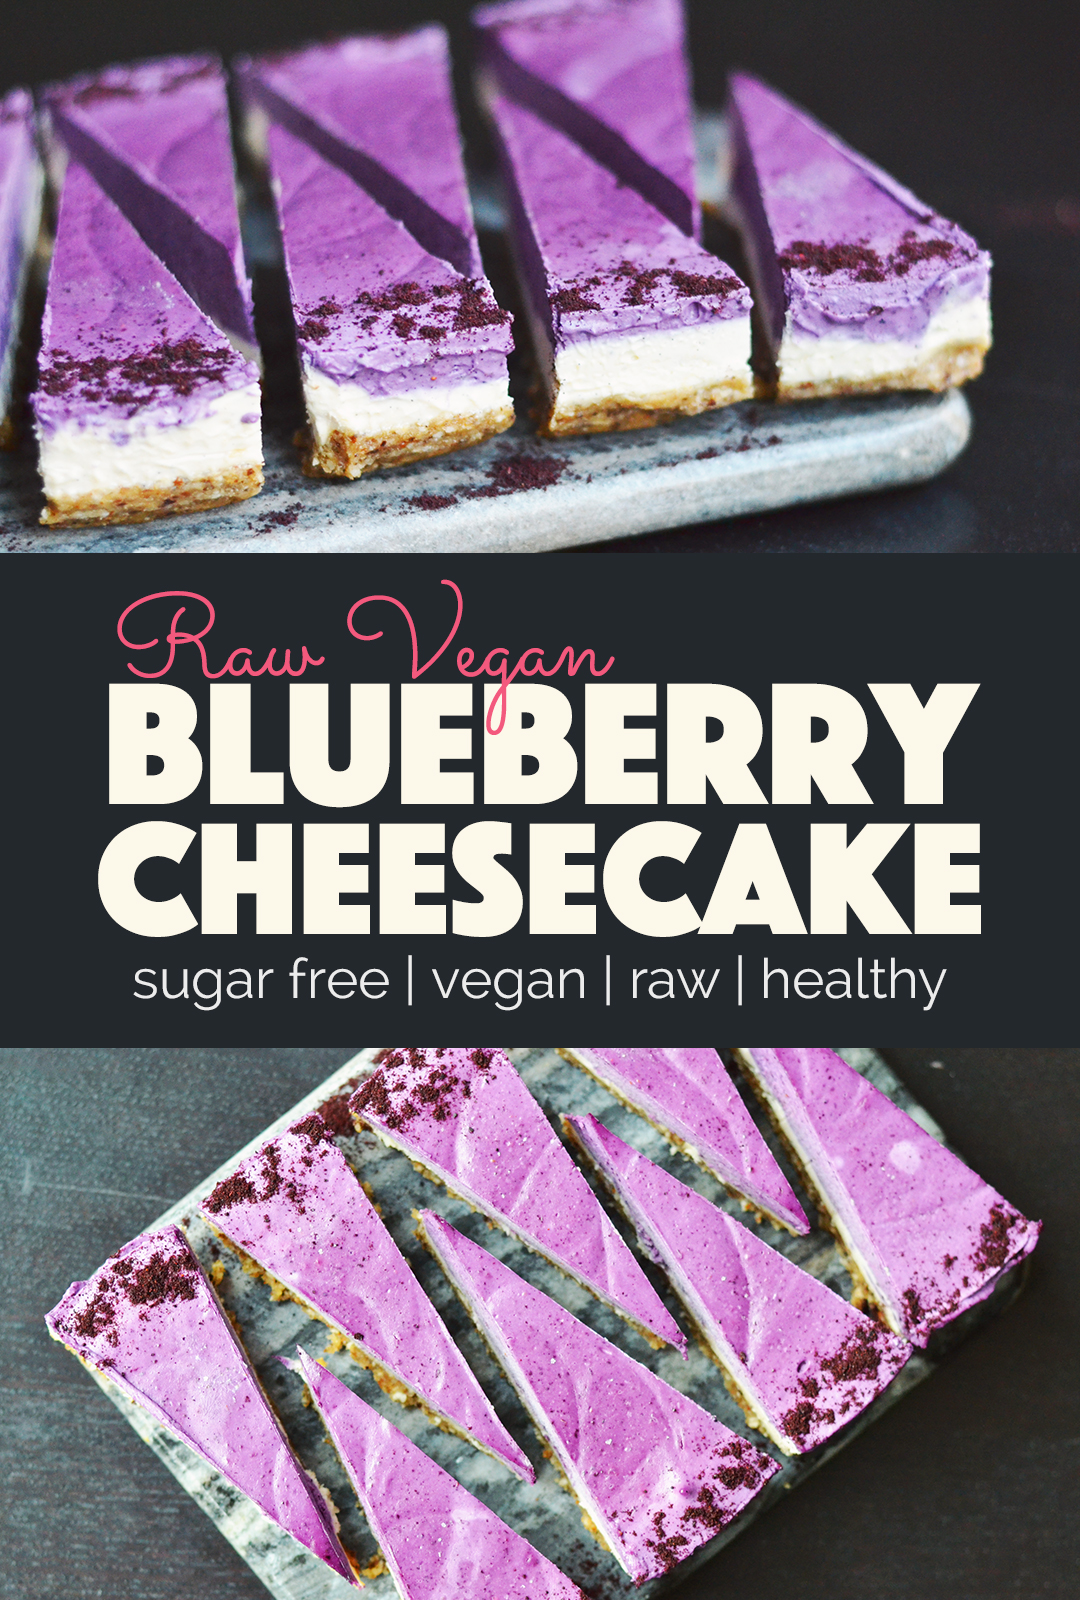 Raw Vegan Blueberry Cheesecake | http://BananaBloom.com #rawvegan